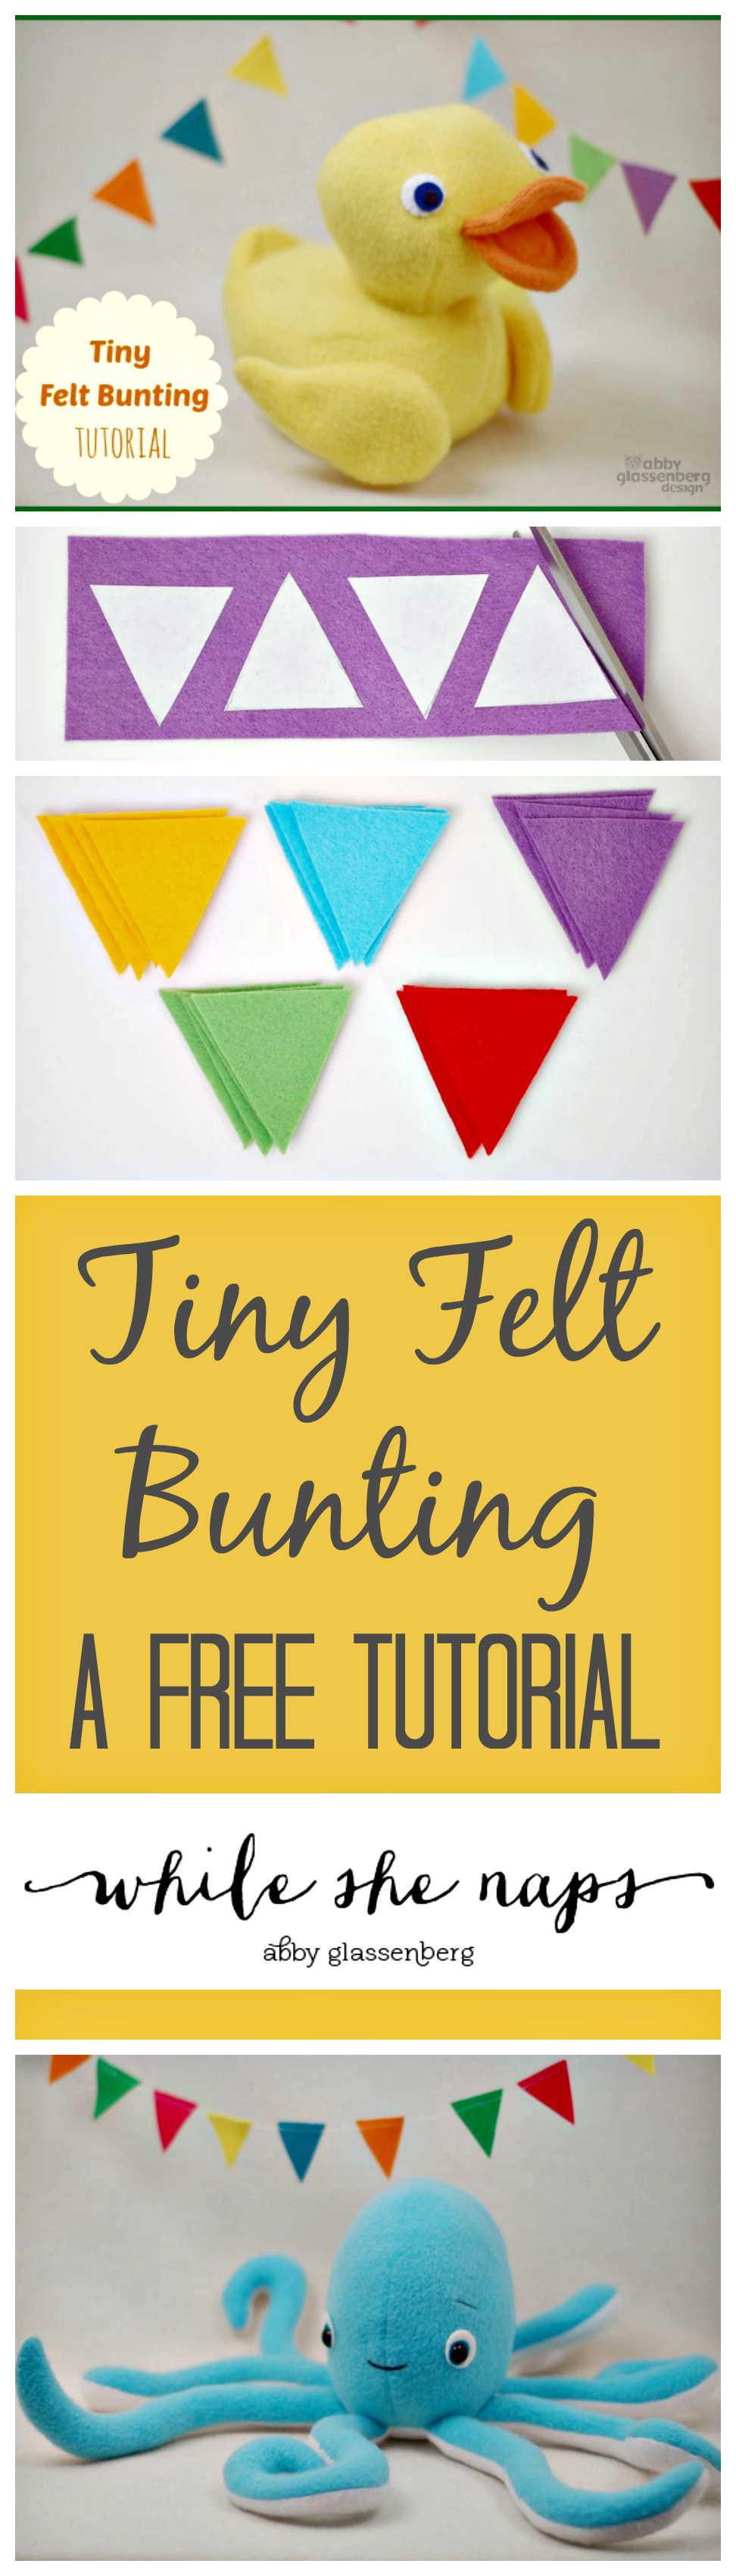 A free tutorial for Tiny Felt Bunting.